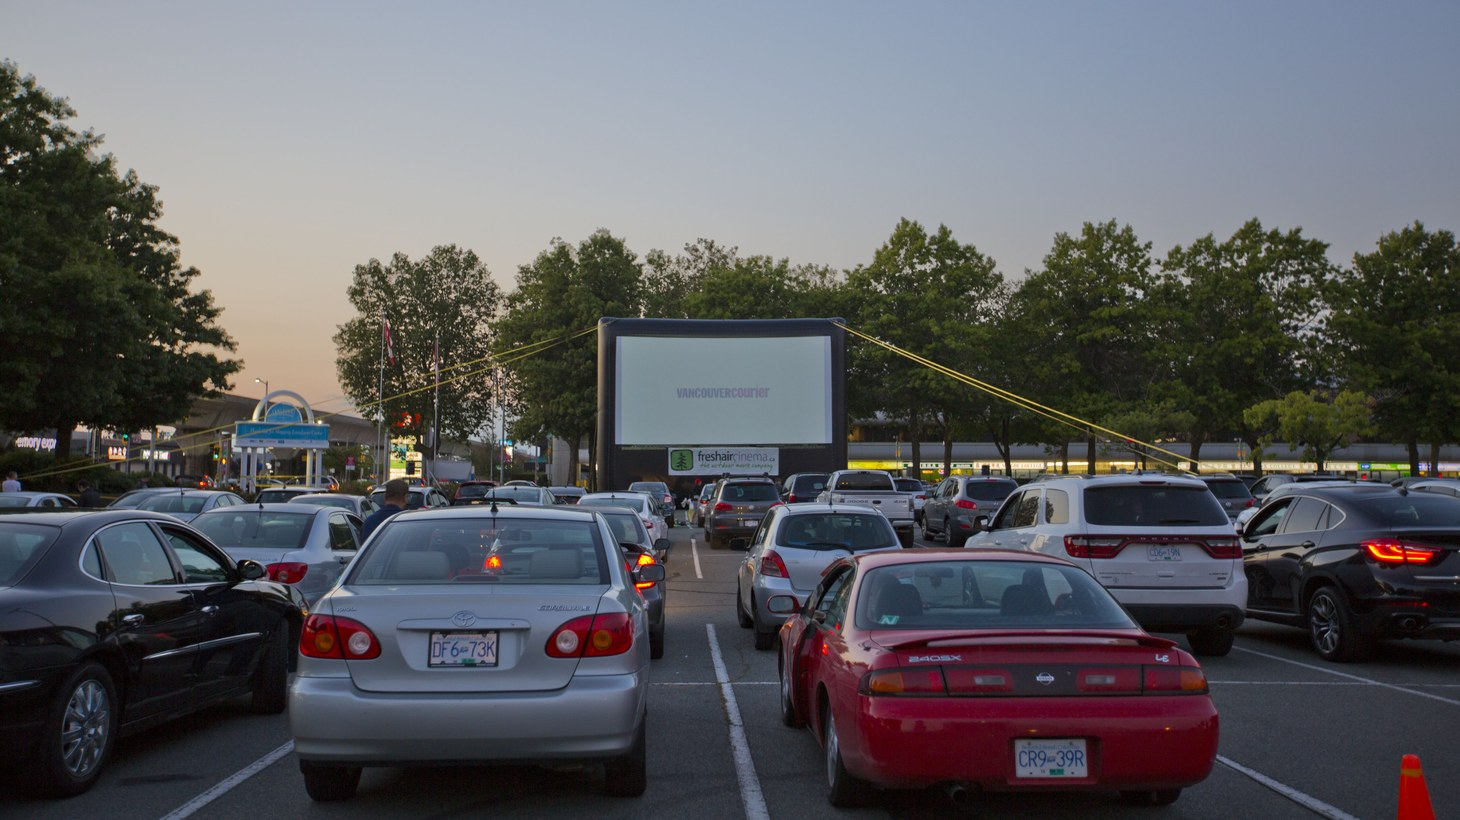 Drive In Movies During Covid A Communal Cultural Experience In The Safety Of Your Own Cars